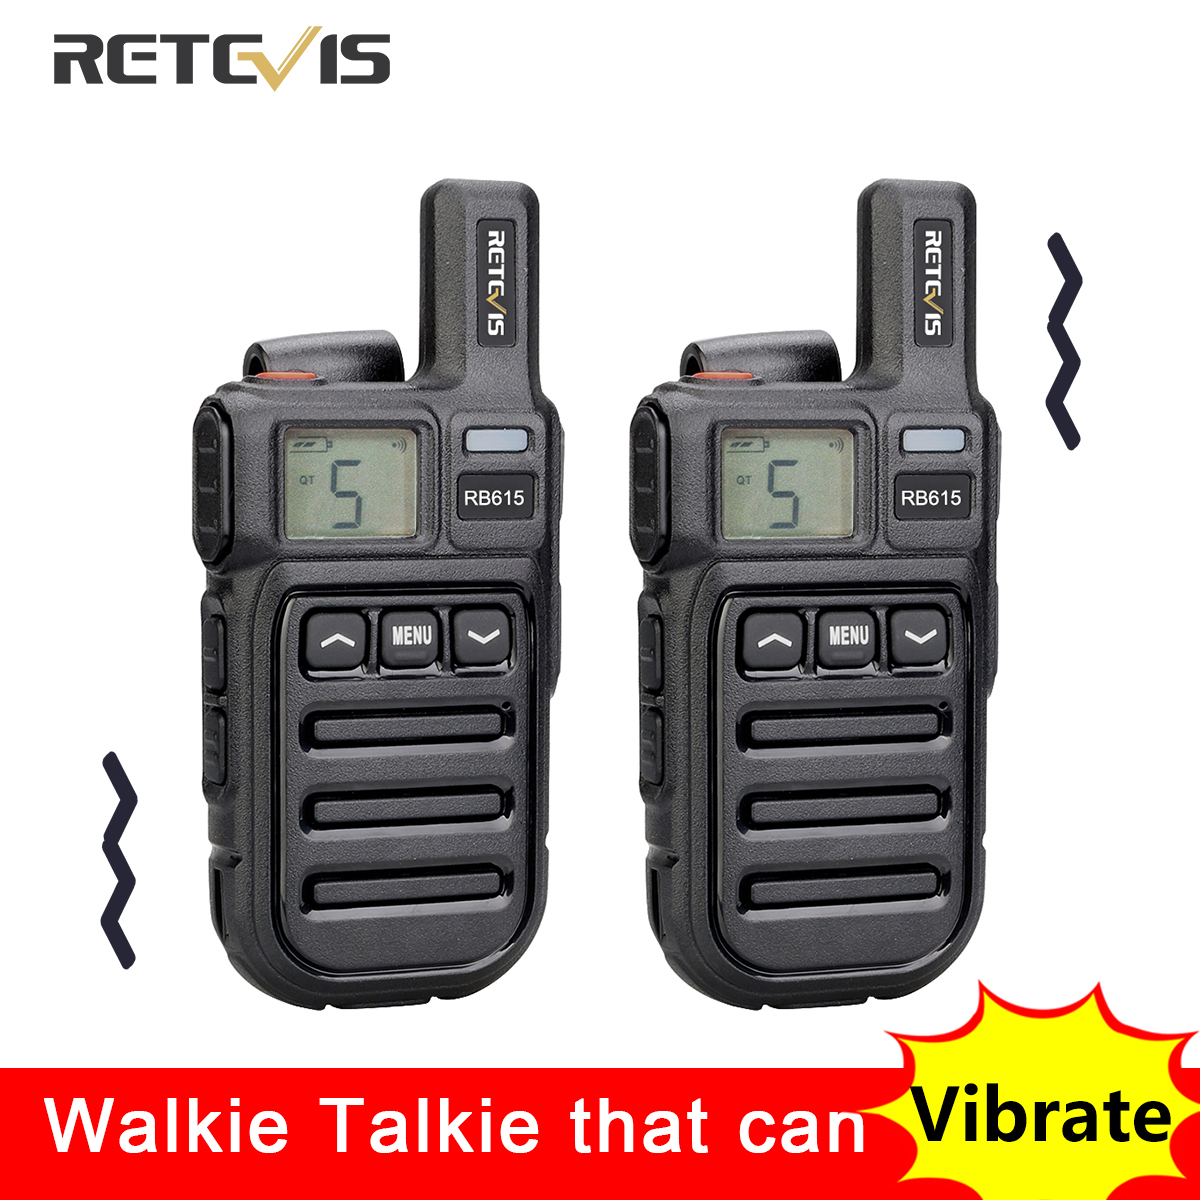 Retevis RB615 PMR Mini Walkie Talkie PMR 446 PTT FRS Walkie-Talkies 1 or 2 pcs Portable Two Way Radio for Restaurant Hunting FRS